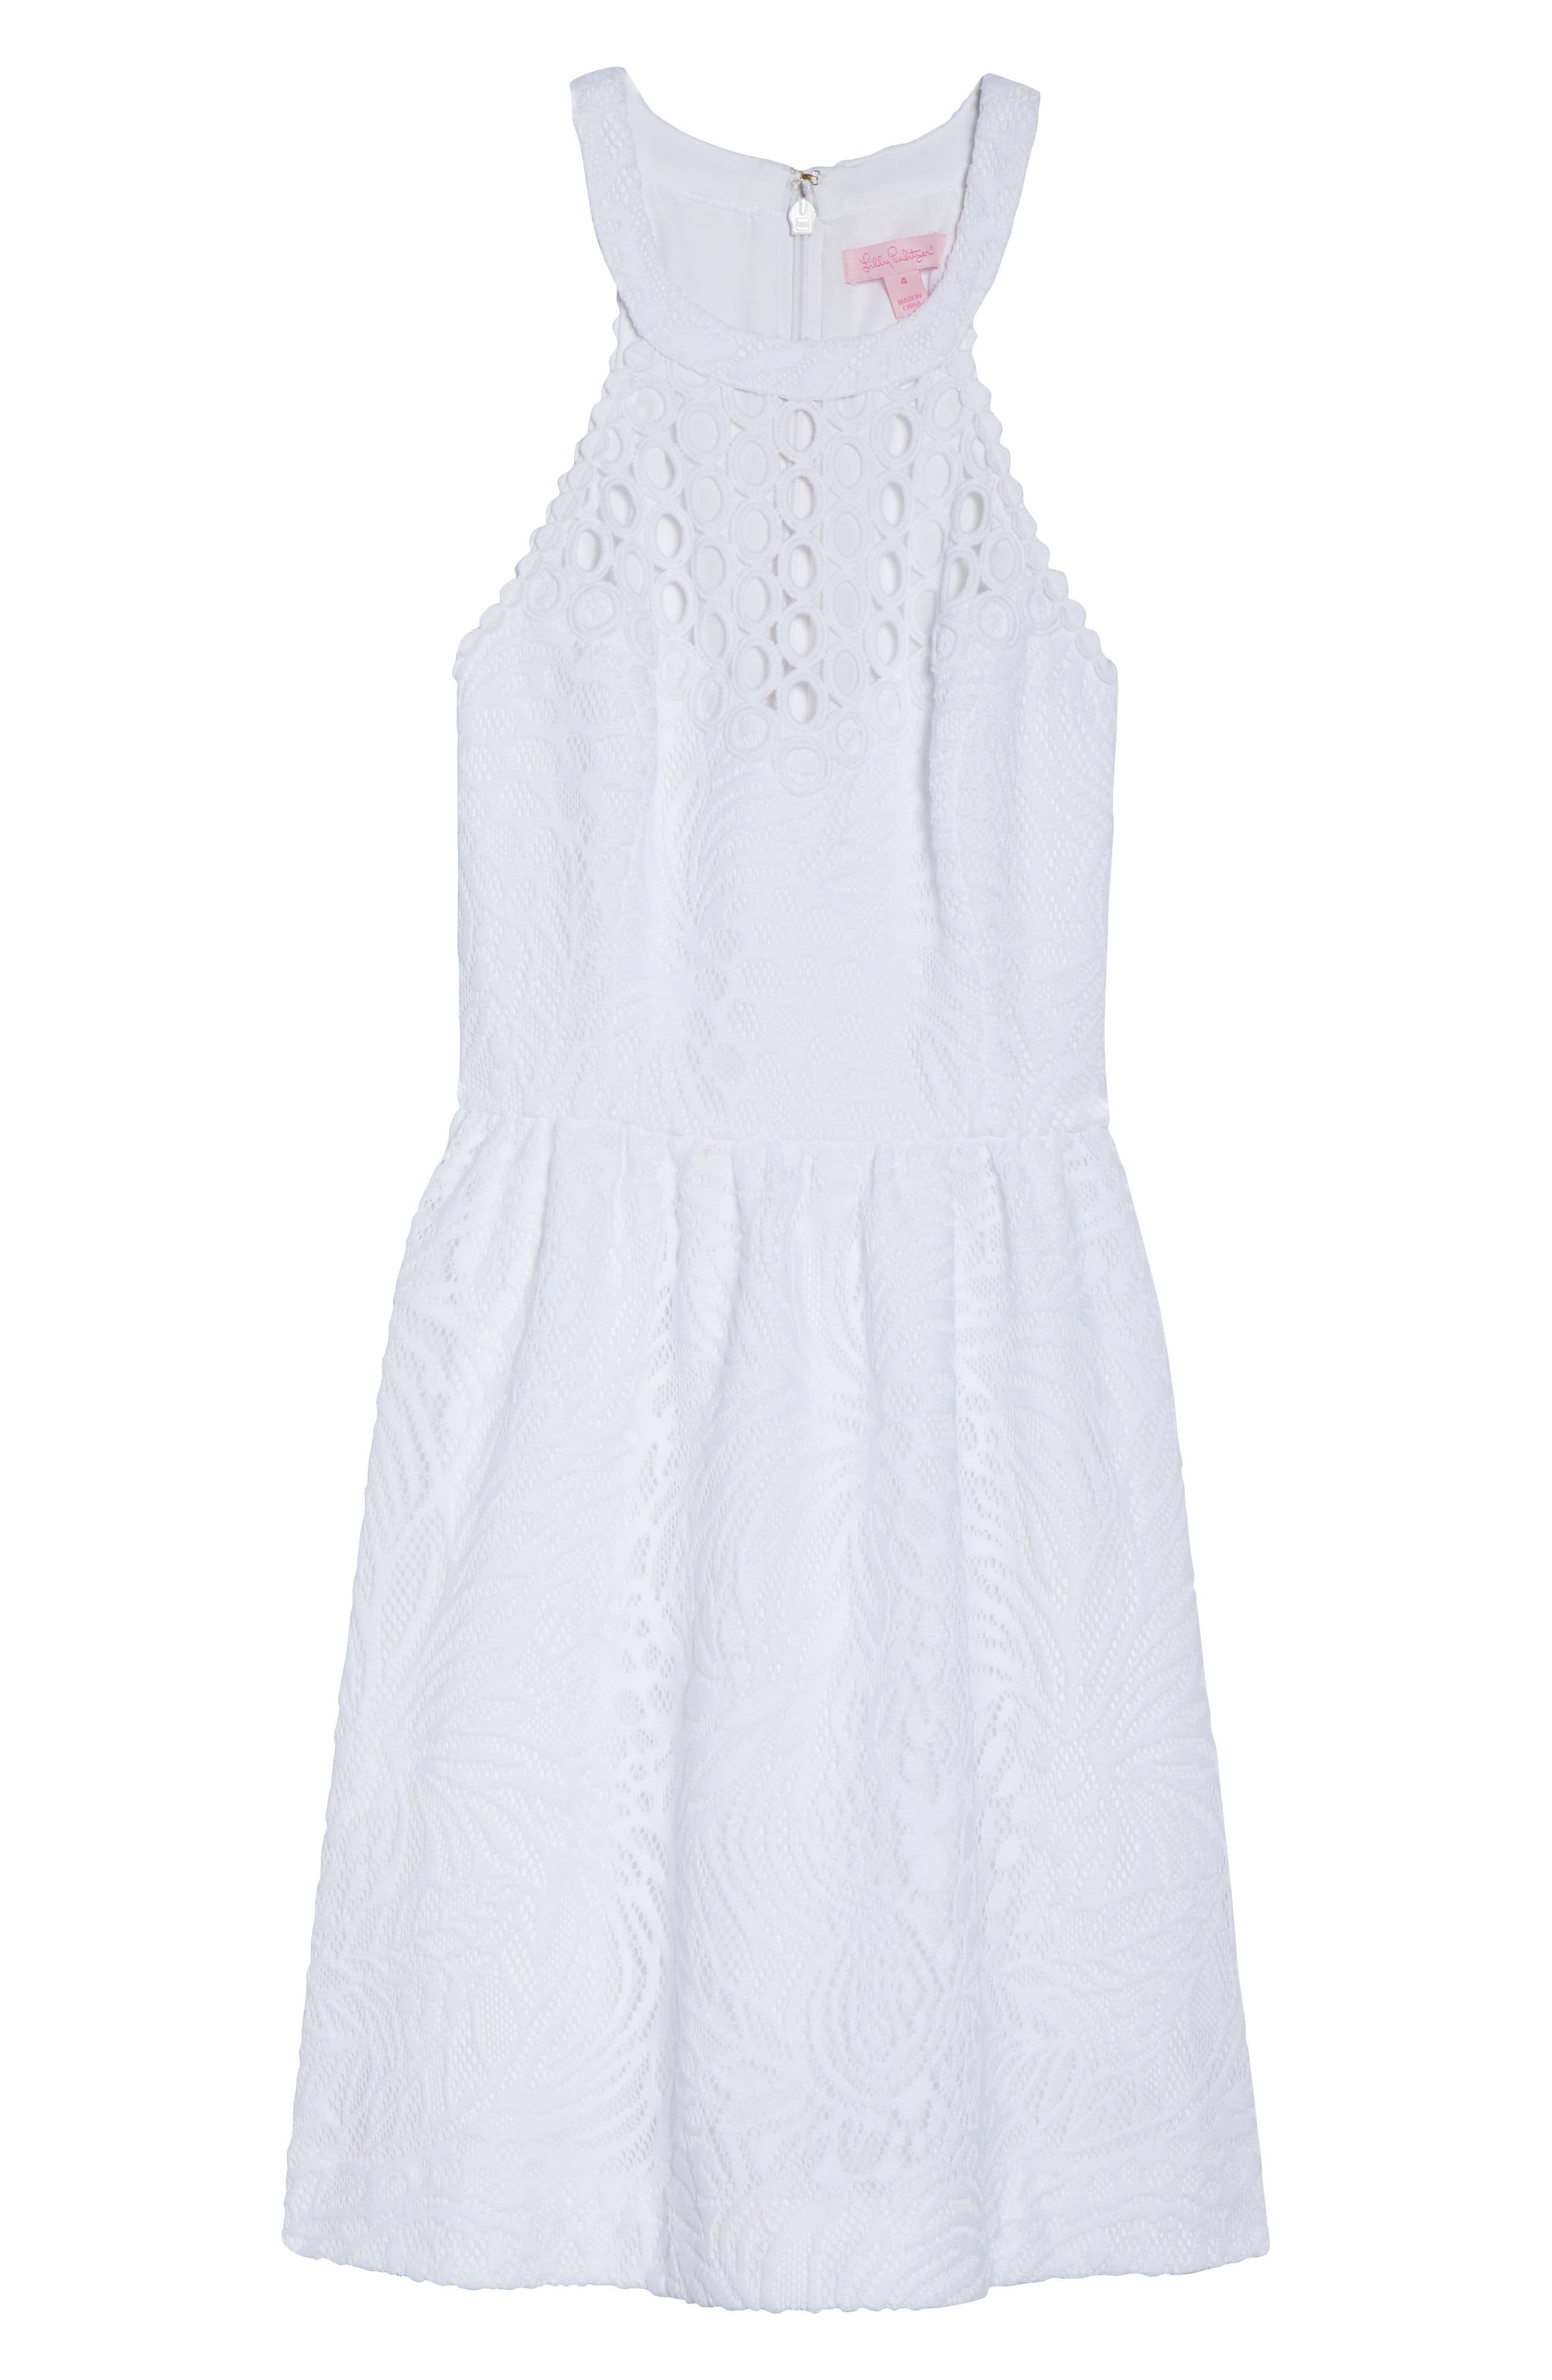 Kinley Halter Dress,                             Alternate thumbnail 6, color,                             Resort White Tropical Lace